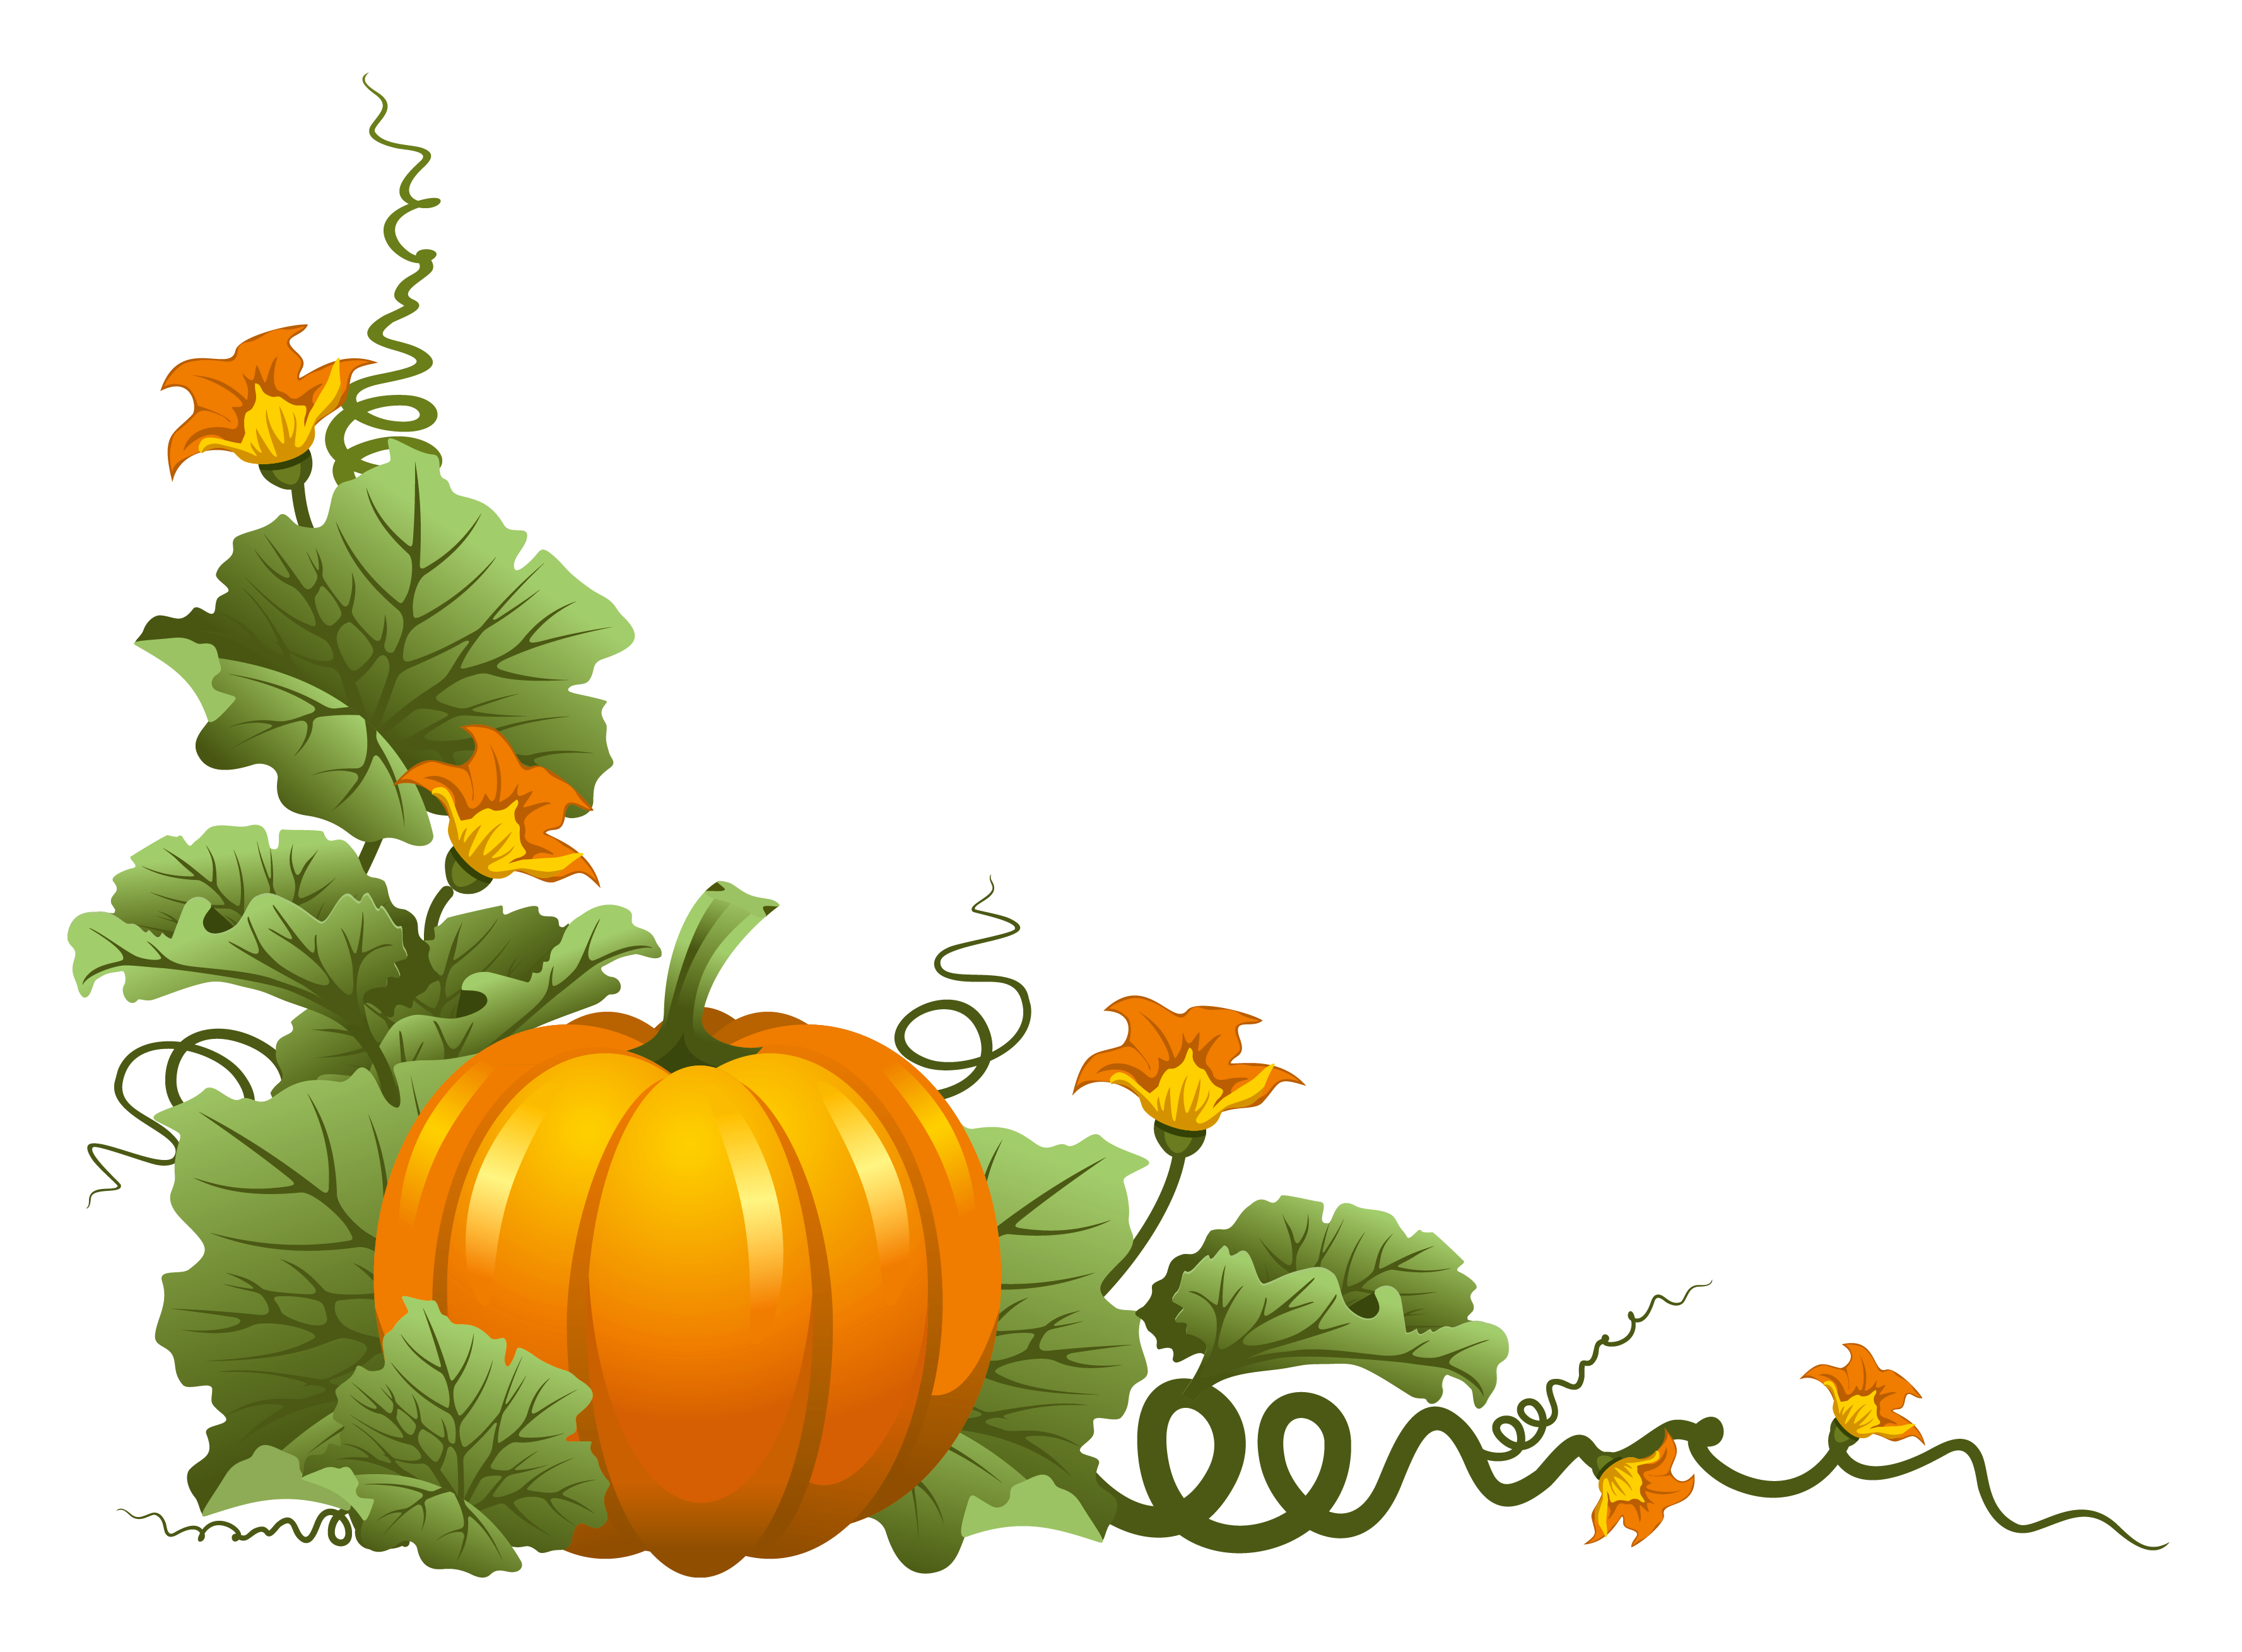 Religious pumpkin clipart free banner transparent library Pumpkin Decor PNG Clipart | ősz/ fall | Pinterest | Clipart gallery ... banner transparent library